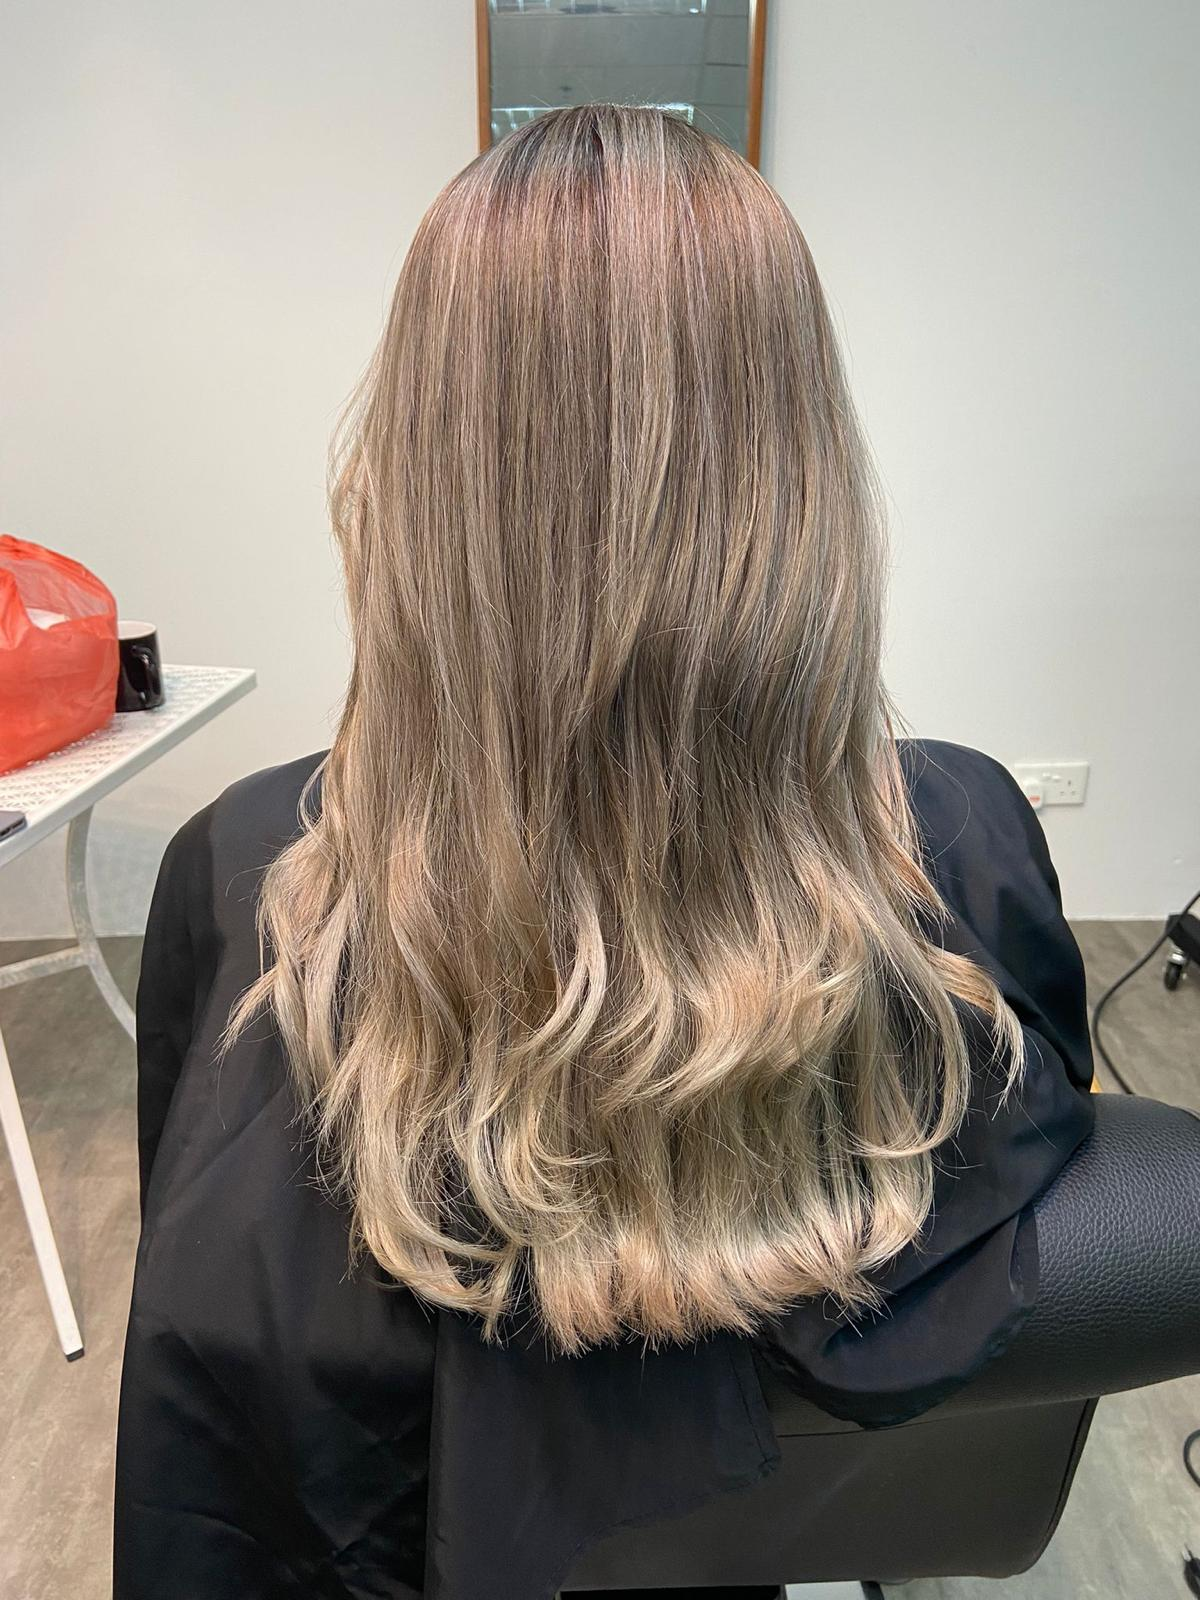 After Advante Water Treatment on Bleached Hair